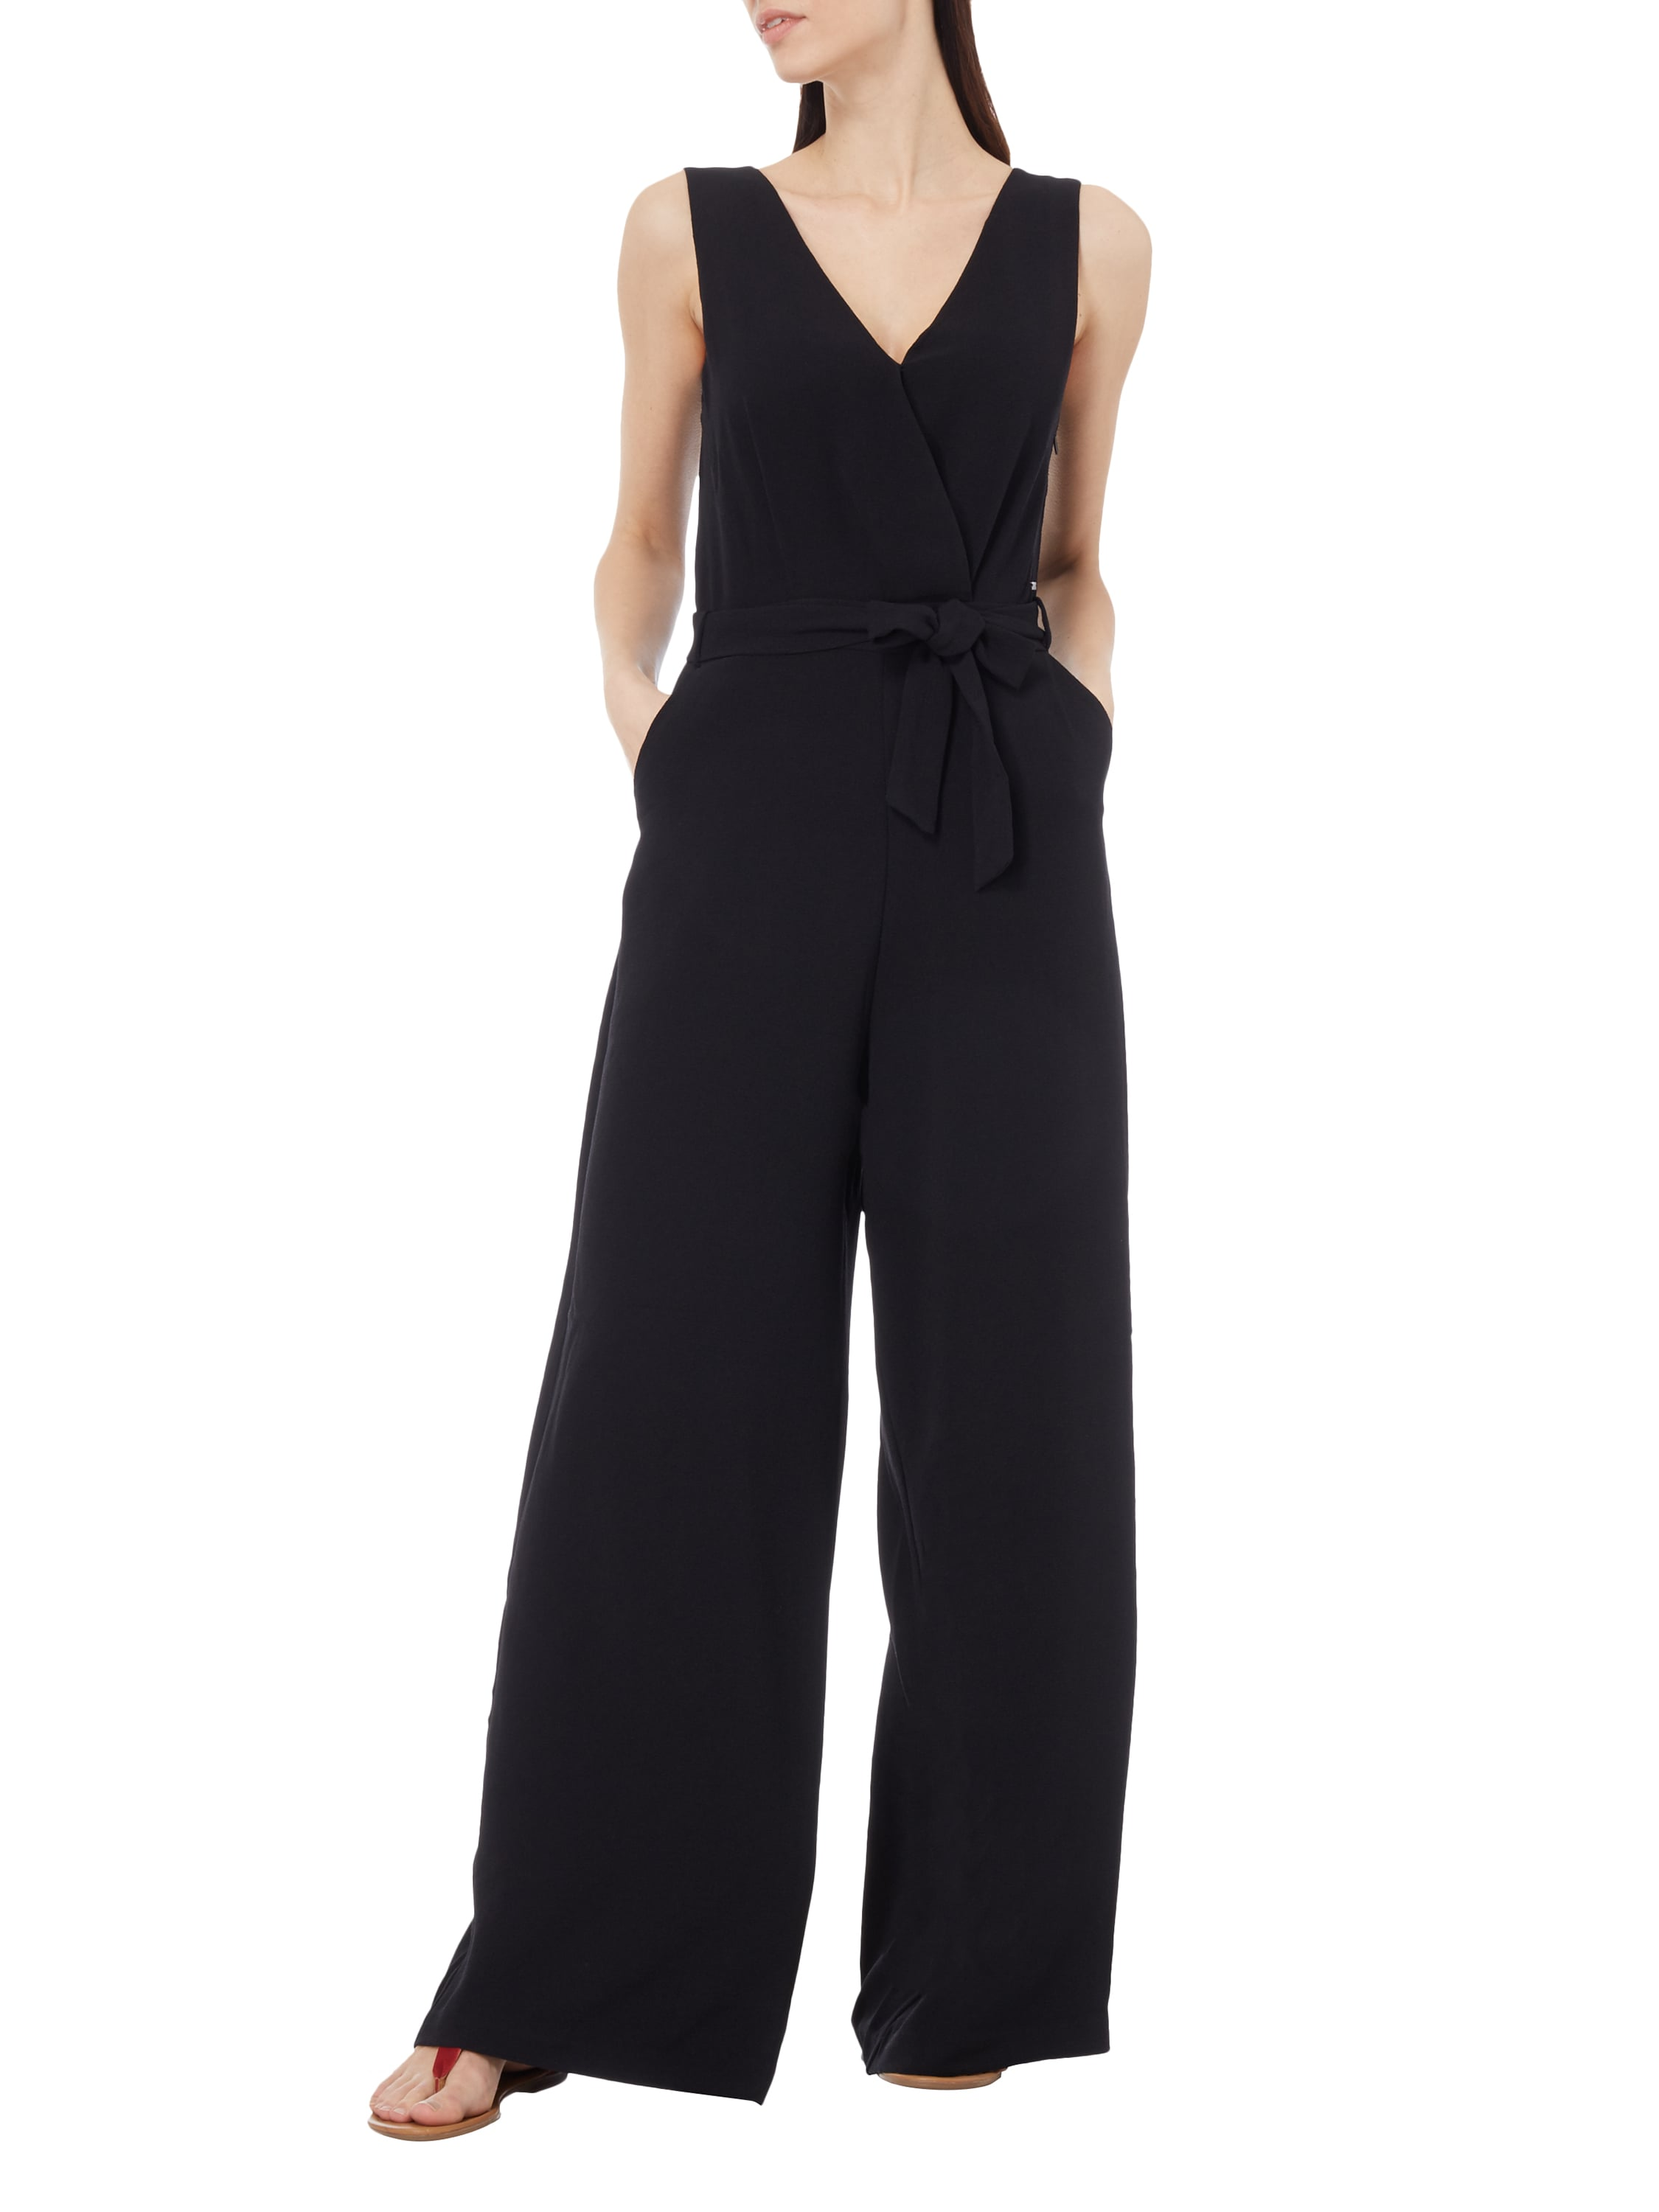 pepe jeans jumpsuit mit weitem bein in grau schwarz online kaufen 9605591 p c online shop. Black Bedroom Furniture Sets. Home Design Ideas